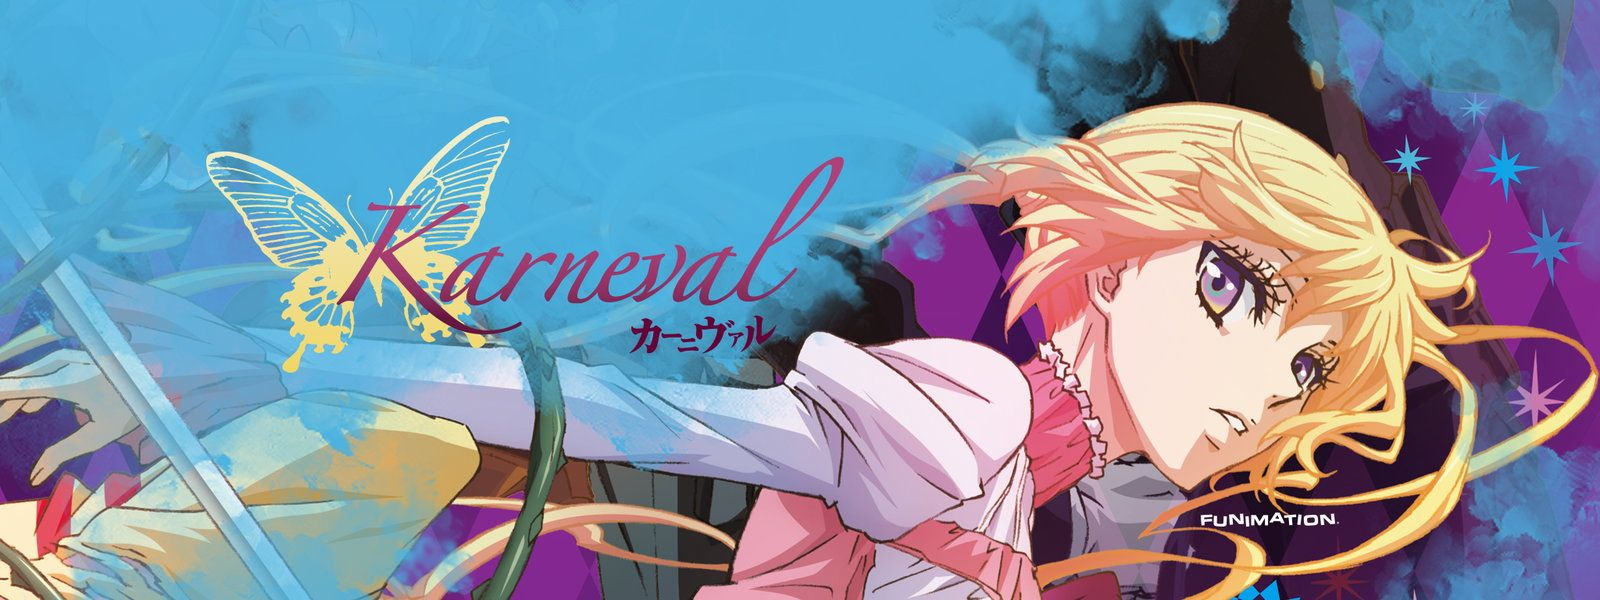 Watch Karneval online Free Hulu (With images) Anime